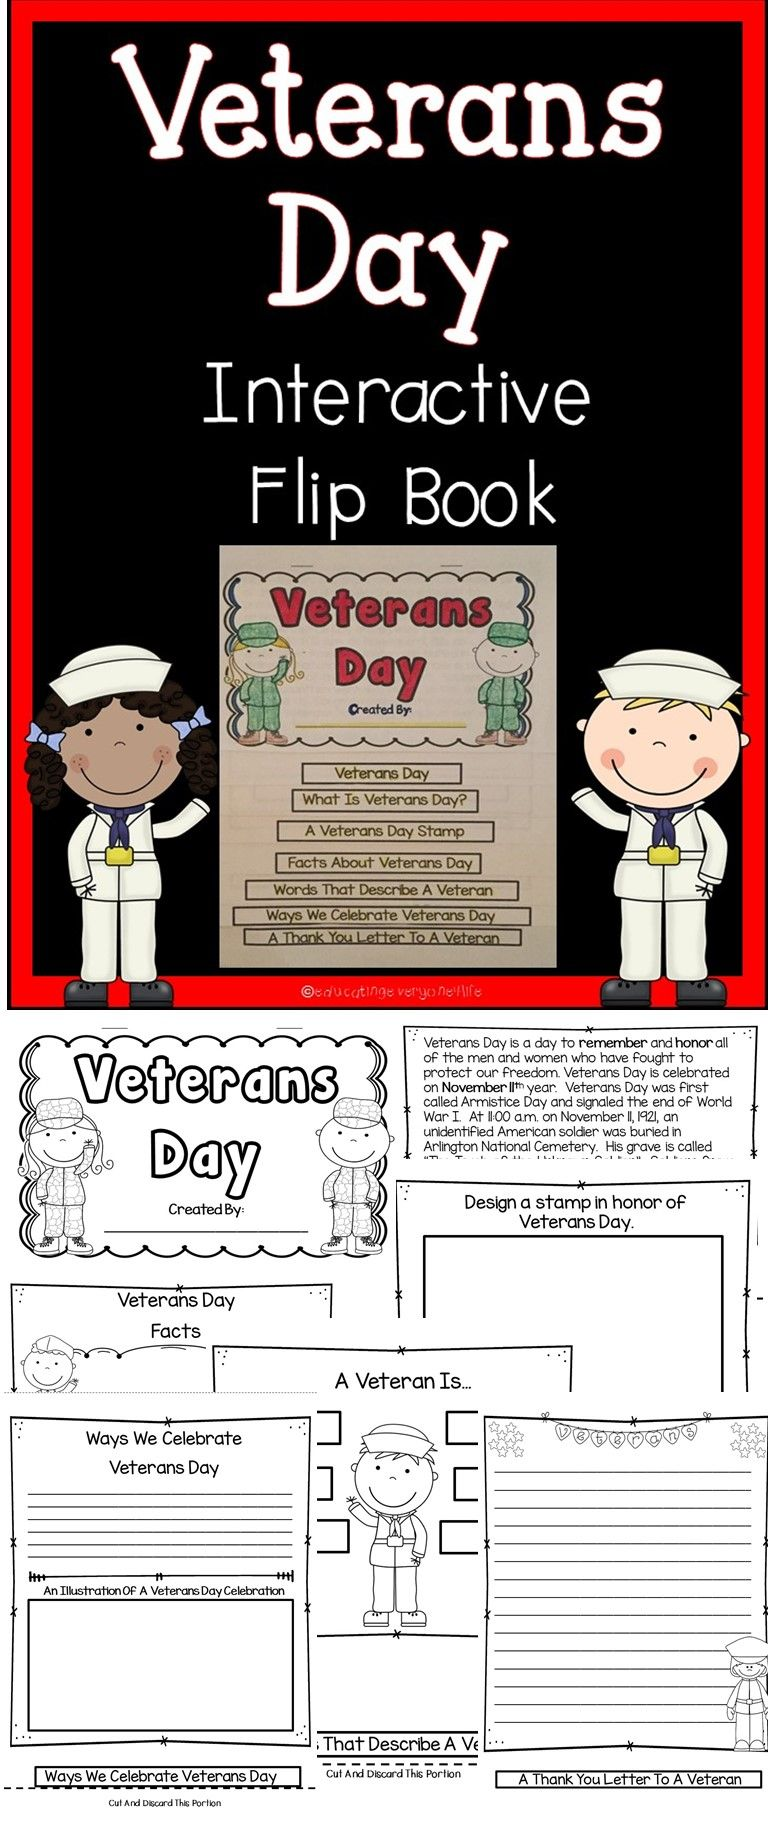 Why is veterans day important - Veterans Day This Veterans Day Flip Book Includes Activities To Engage Students While Learning About